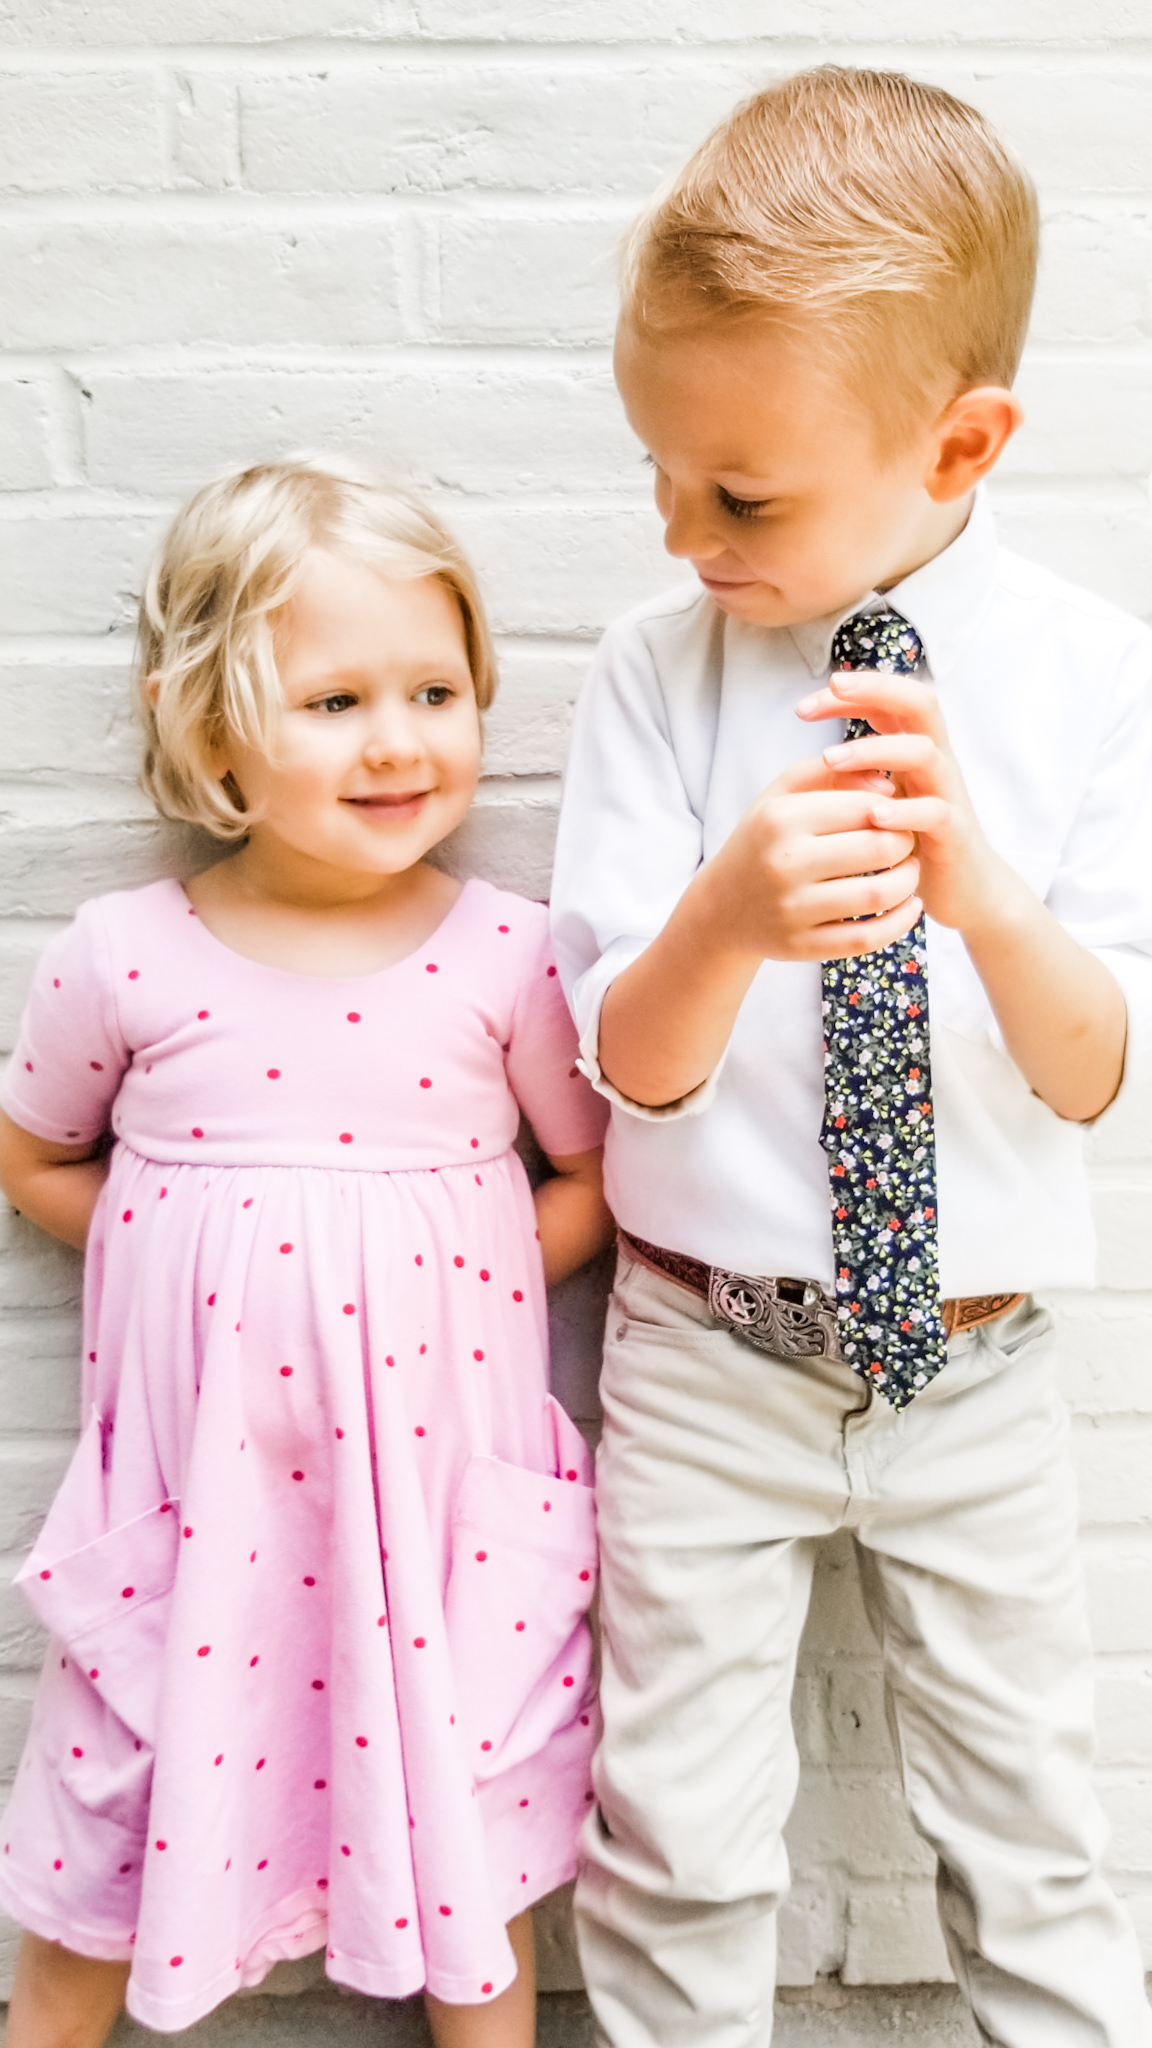 I just can't get enough of this picture. Like Wesley looks like a little MAN and Pepper is just as sweet as sweet can be. Outfits : Wesley- Old Navy Pants (new), white button-up (used), ZUZU tie (new). Pepper-  Remie girl  dress (ethical)